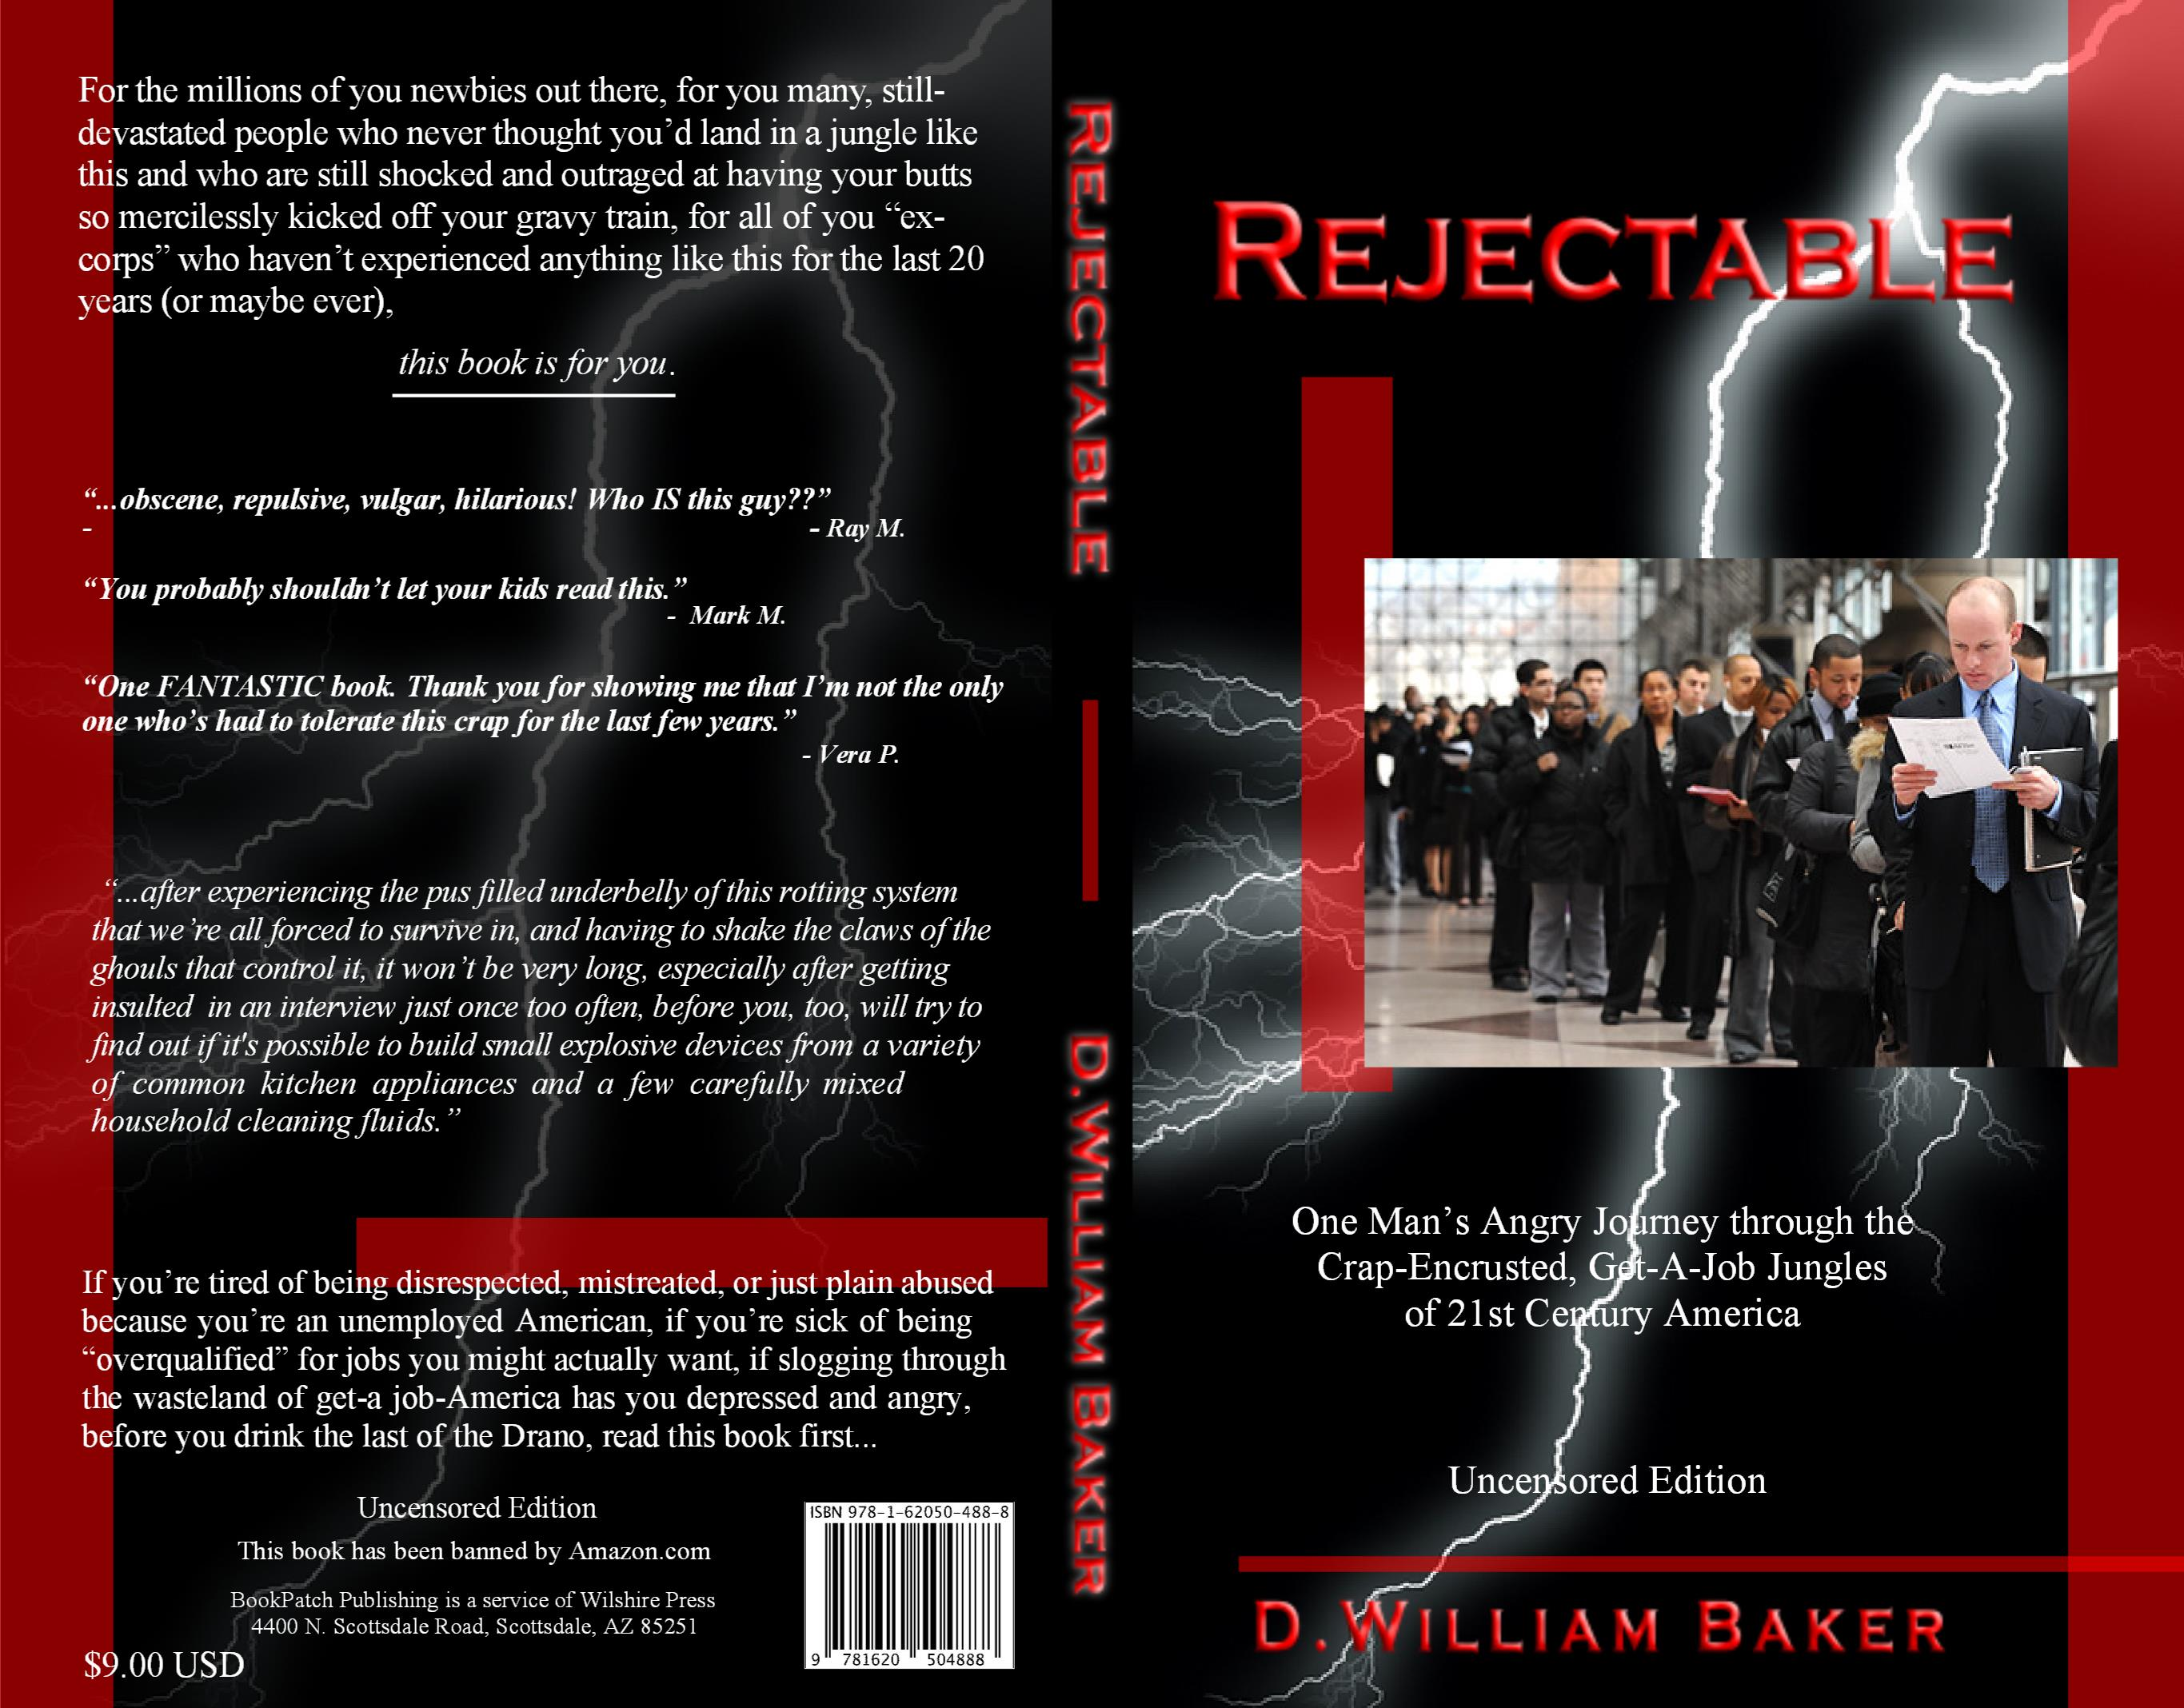 rejectable by david baker com rejectable cover image rejectable cover image rejectable cover image